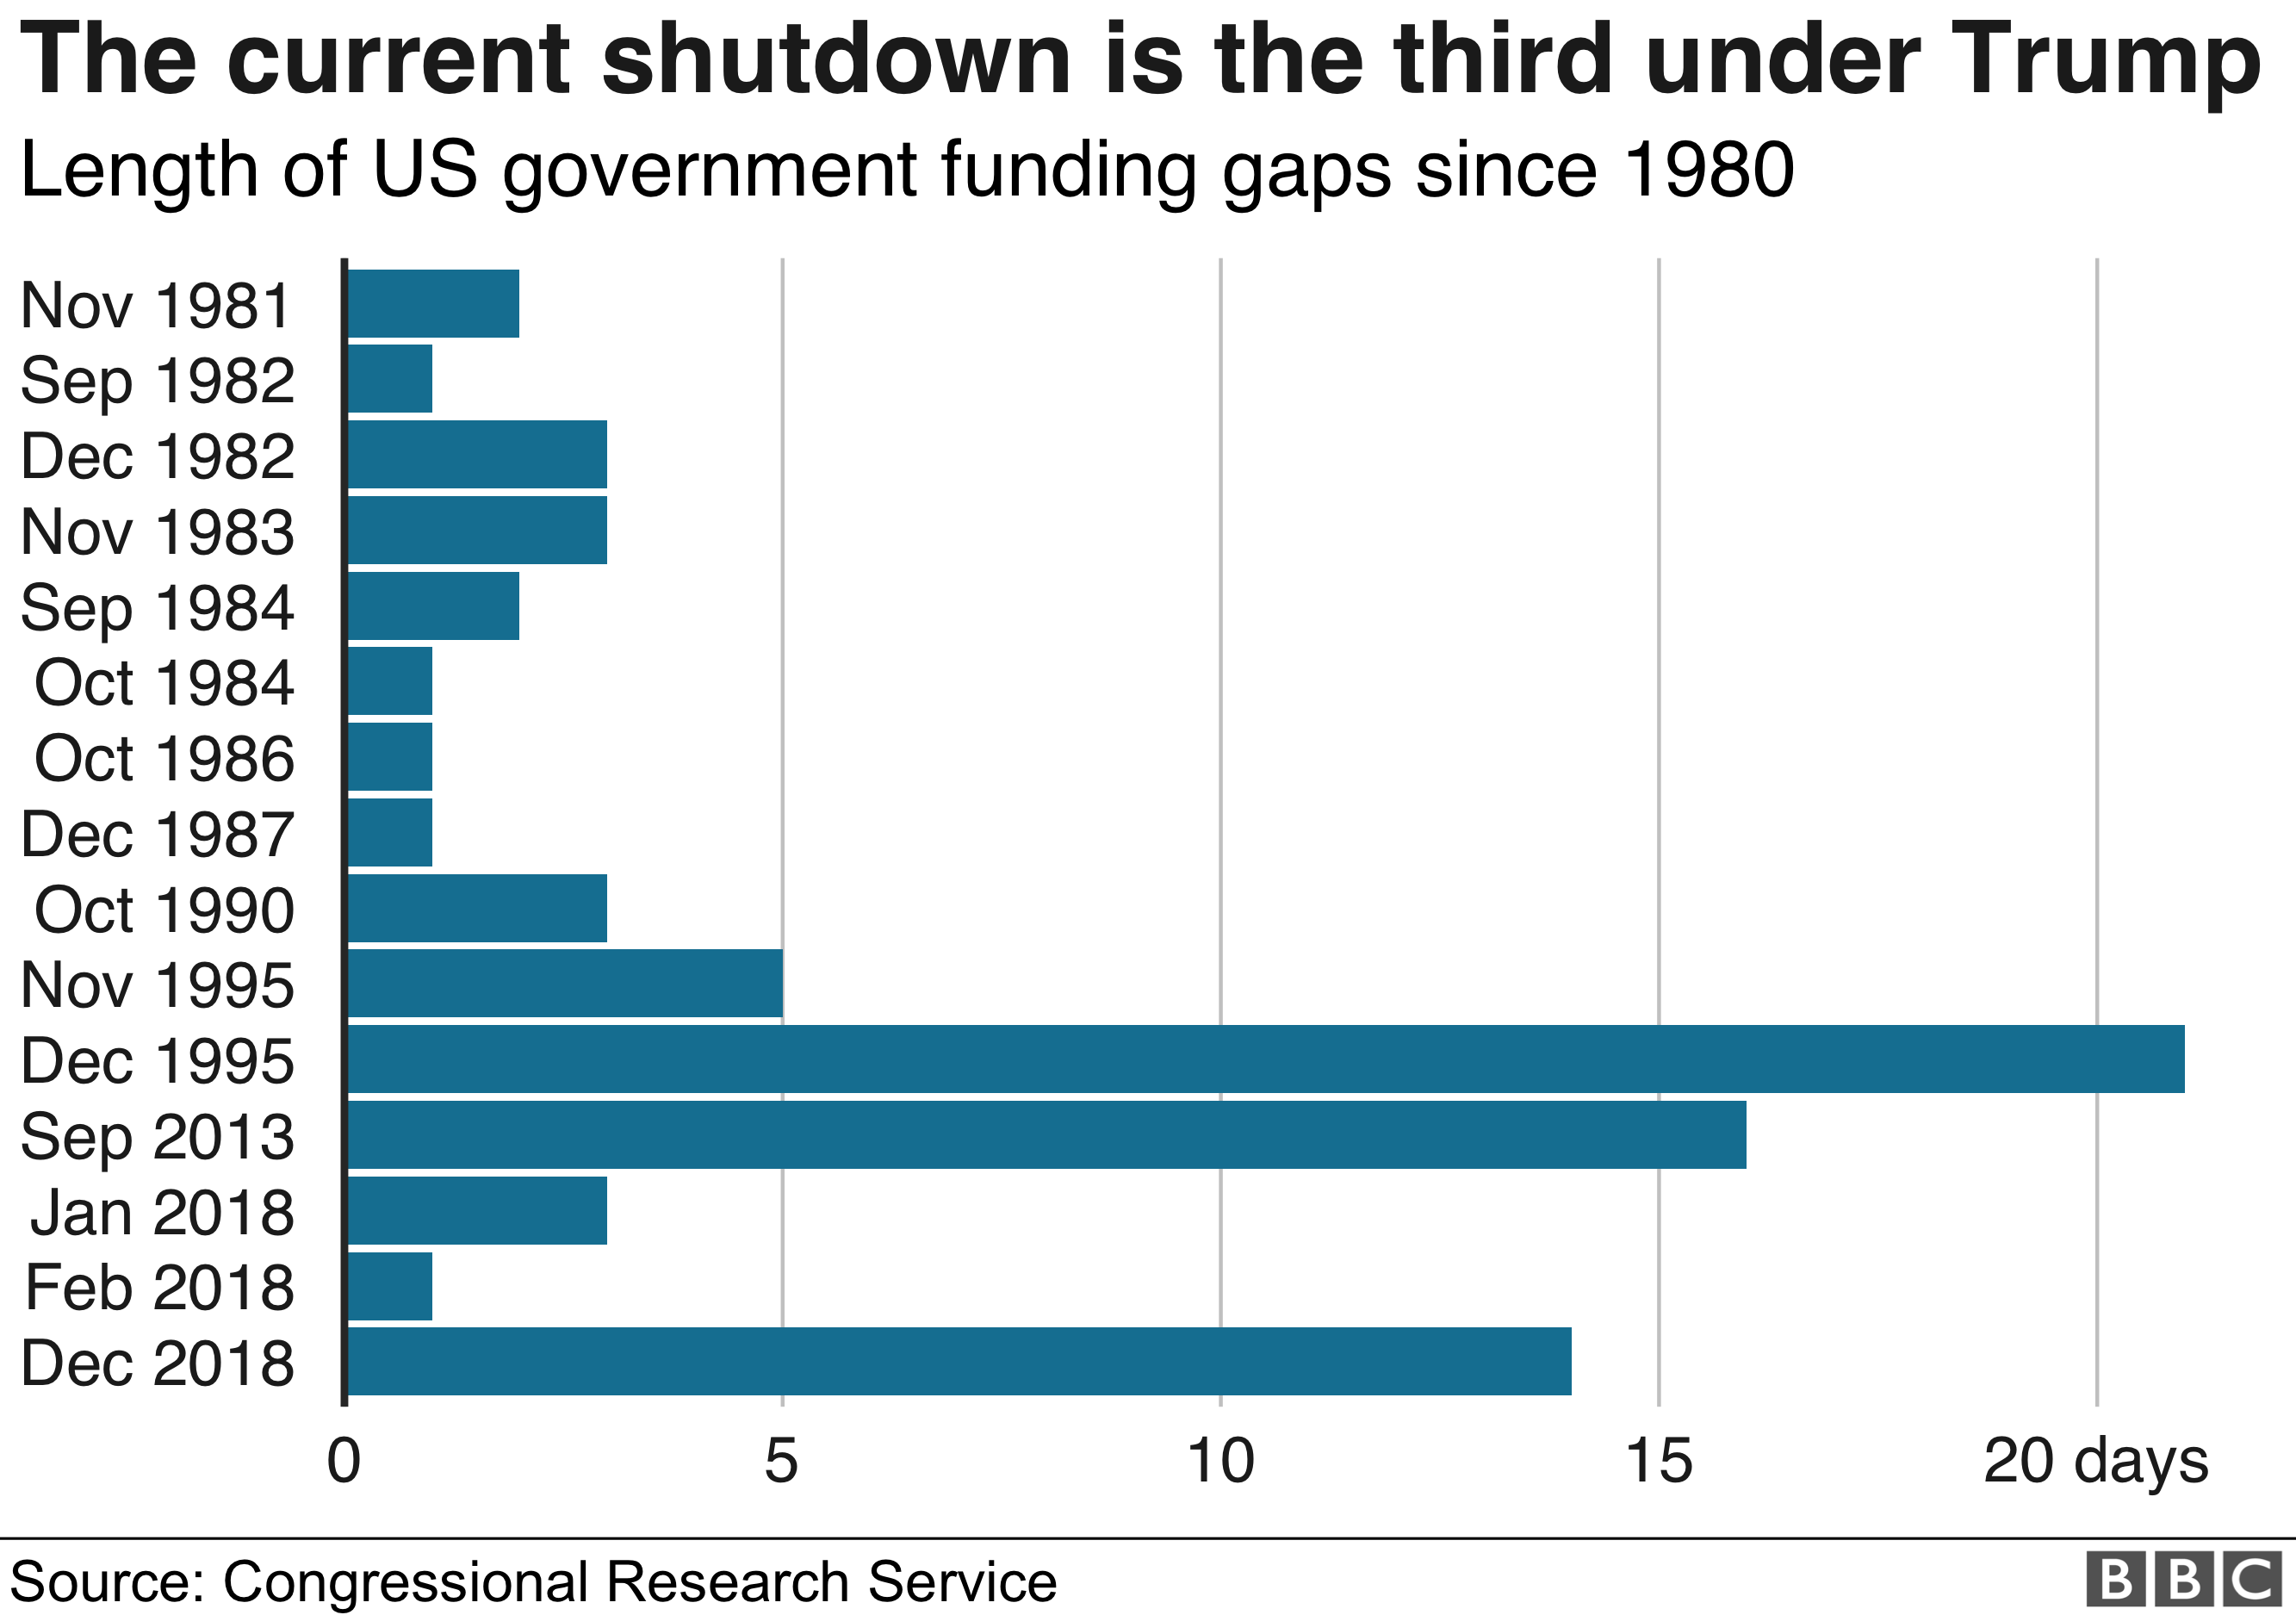 Chart showing how the current US shutdown compares in length to previous funding gaps. It is currently the third longest shutdown since 1980.